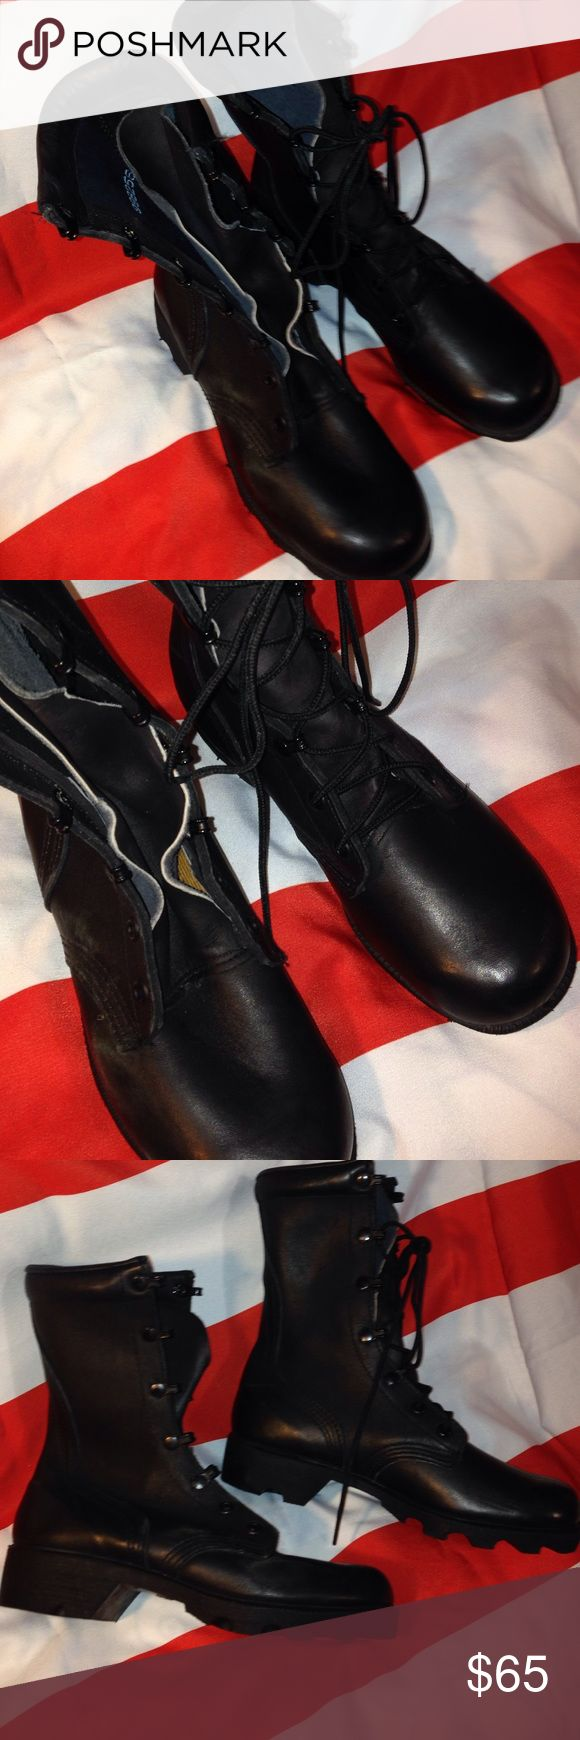 VTG MILITARY ISSUE Combat boots size 3 1/2R BLACK Combat boots size 3 1/2R BLACK missing shoe string Urban Outfitters Shoes Combat & Moto Boots